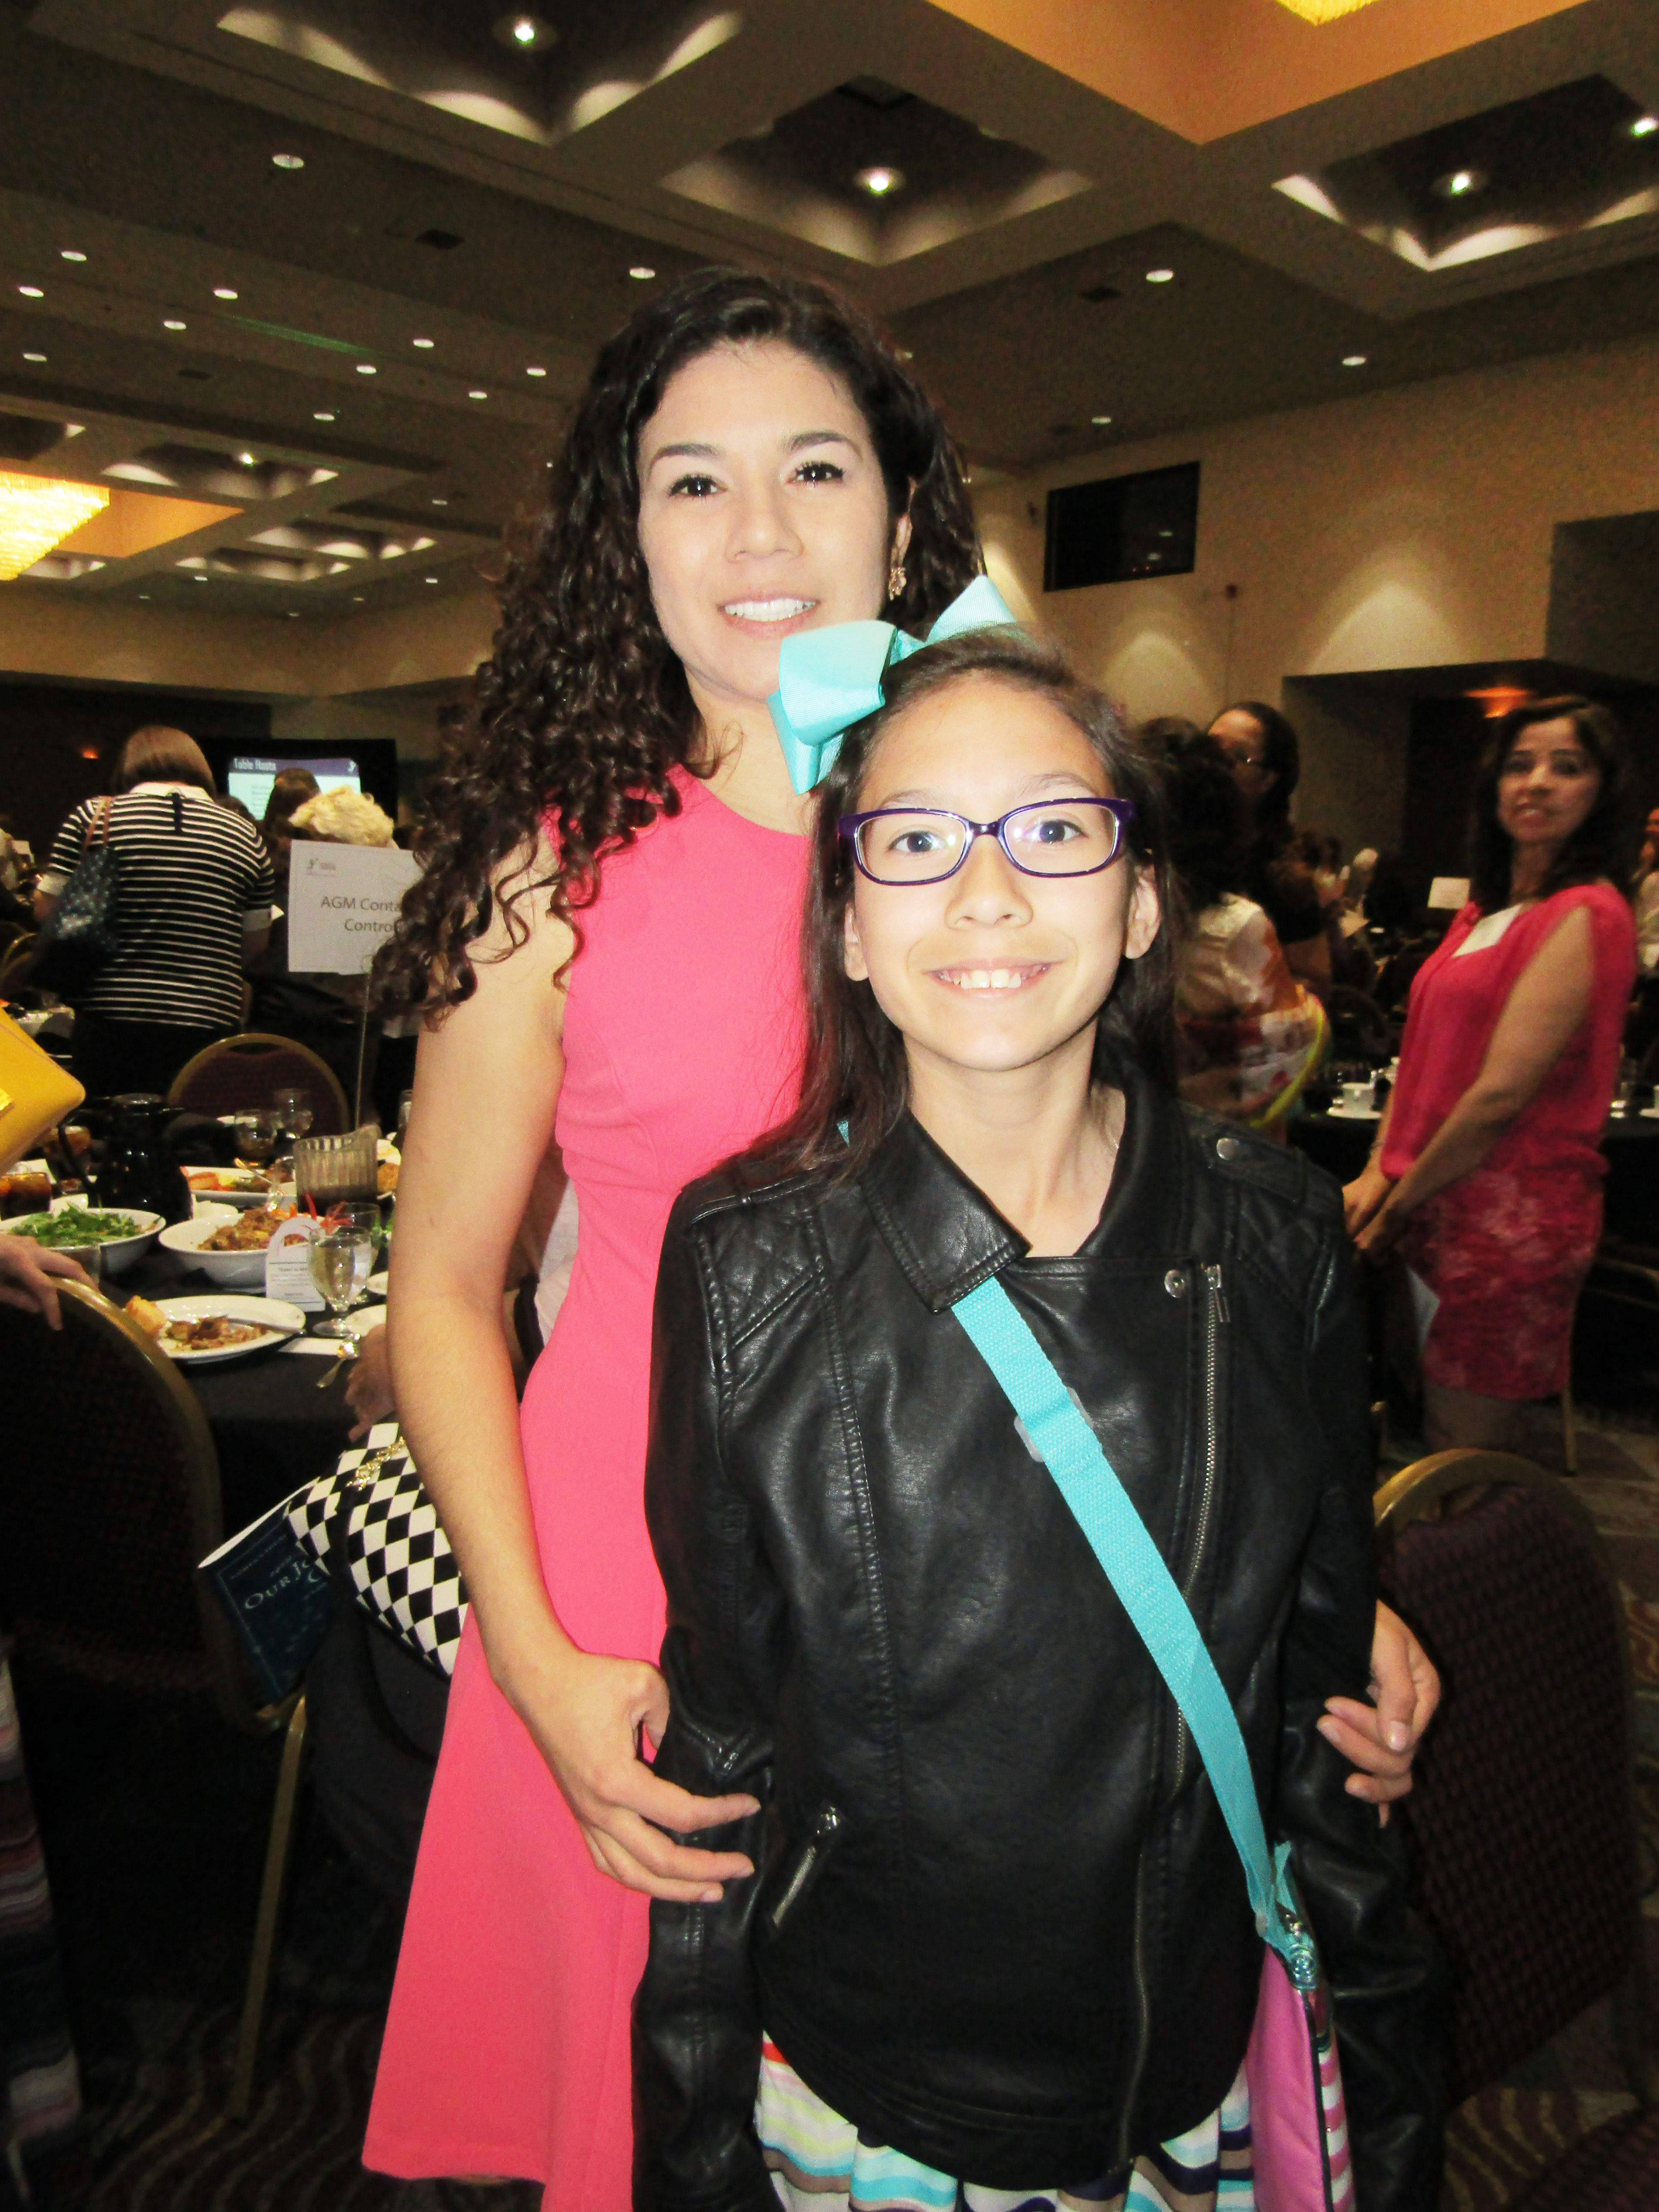 –Alexa Ramirez (Primavera Foundation Her Family program participant, new homeowner, and Primavera Foundation grantee speaker at the 2017 Women's Foundation Southern Arizona Annual Luncheon)